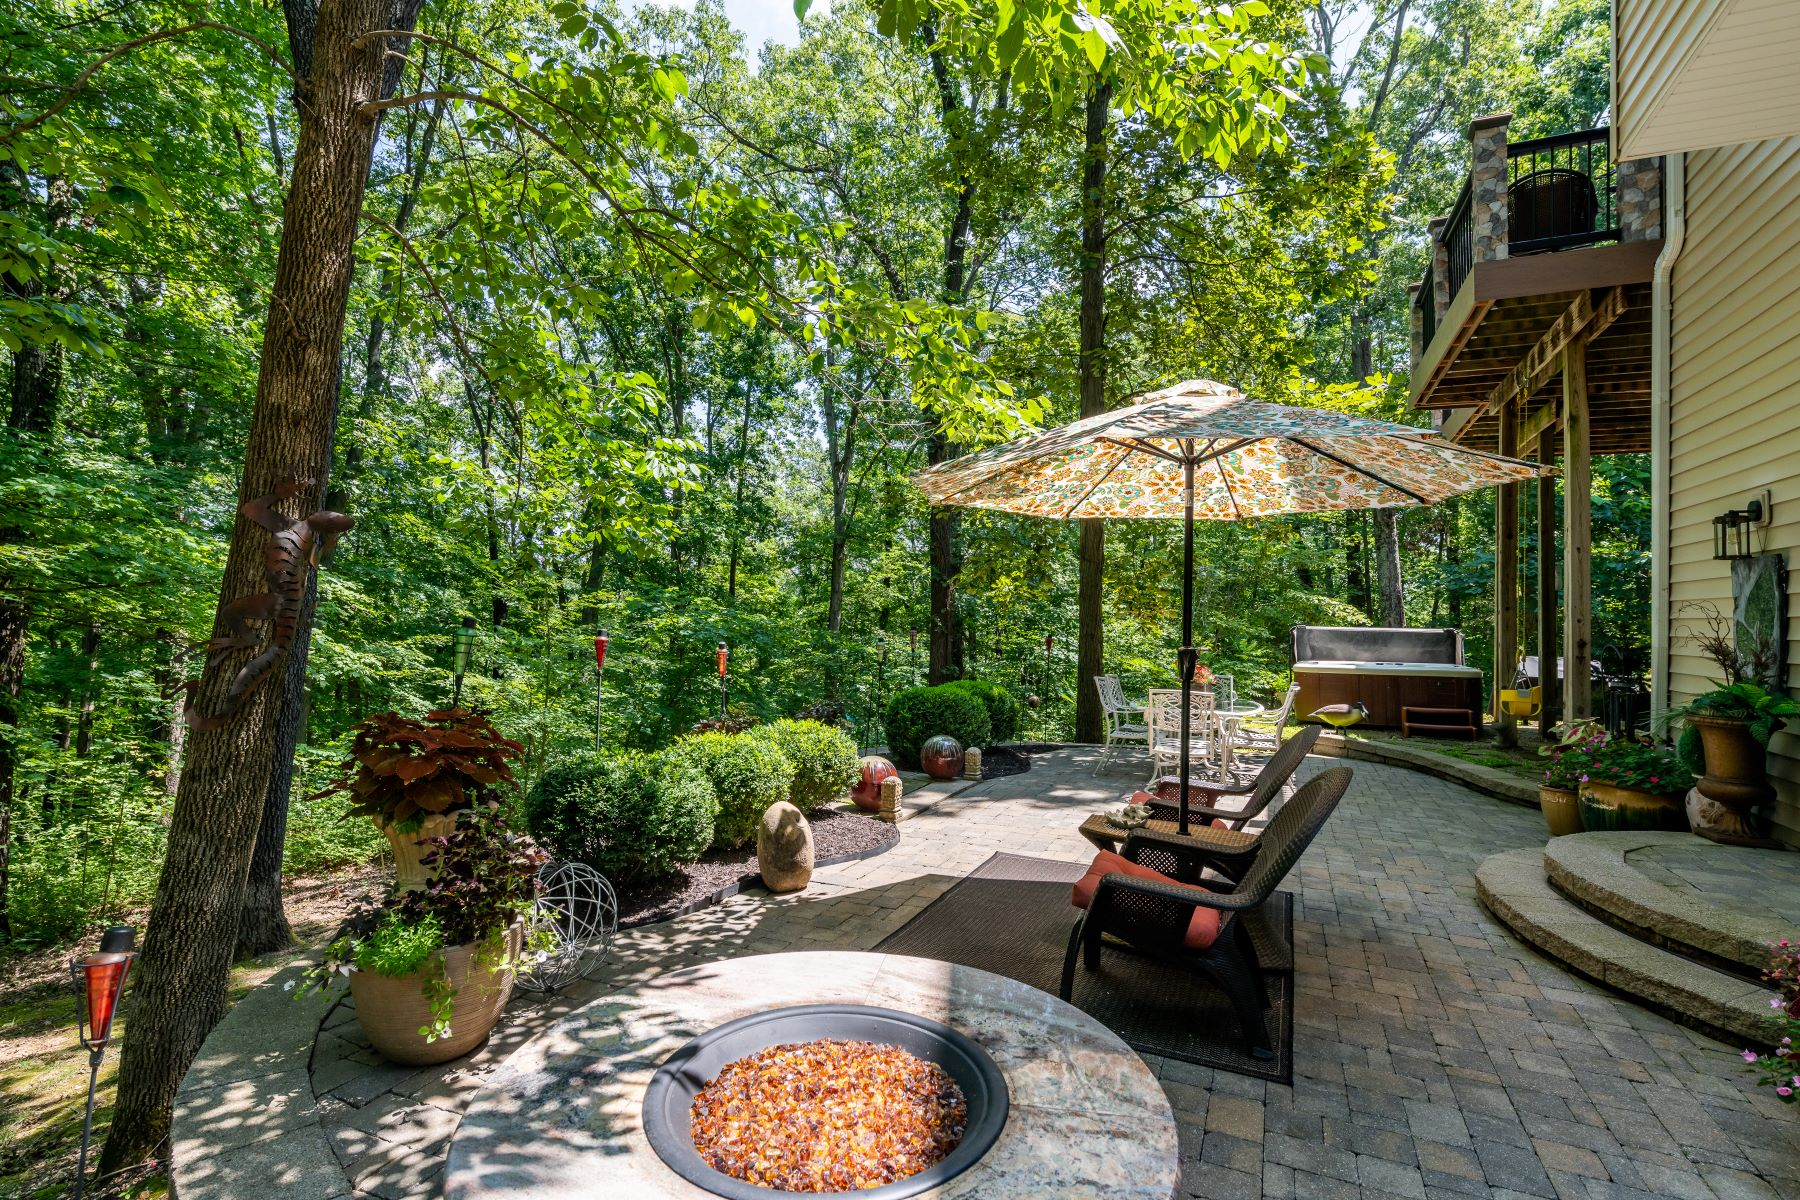 Additional photo for property listing at Stylish 1.5-story on a Private Street 352 Whispering Forest Lane Pacific, Missouri 63069 United States